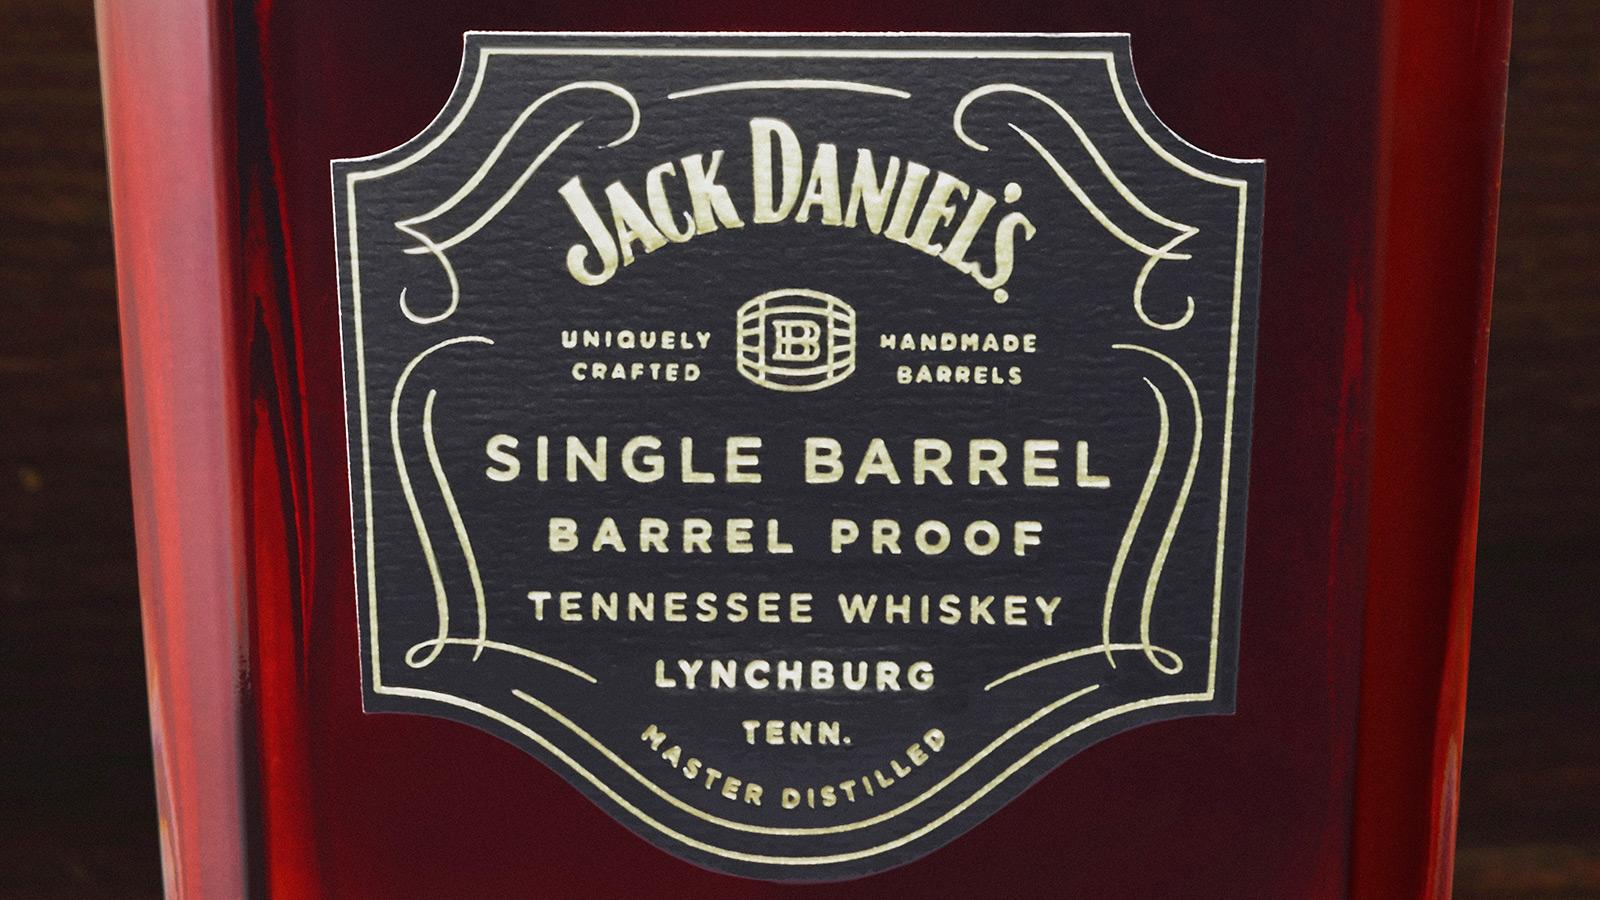 Jack Daniel's First Barrel Proof